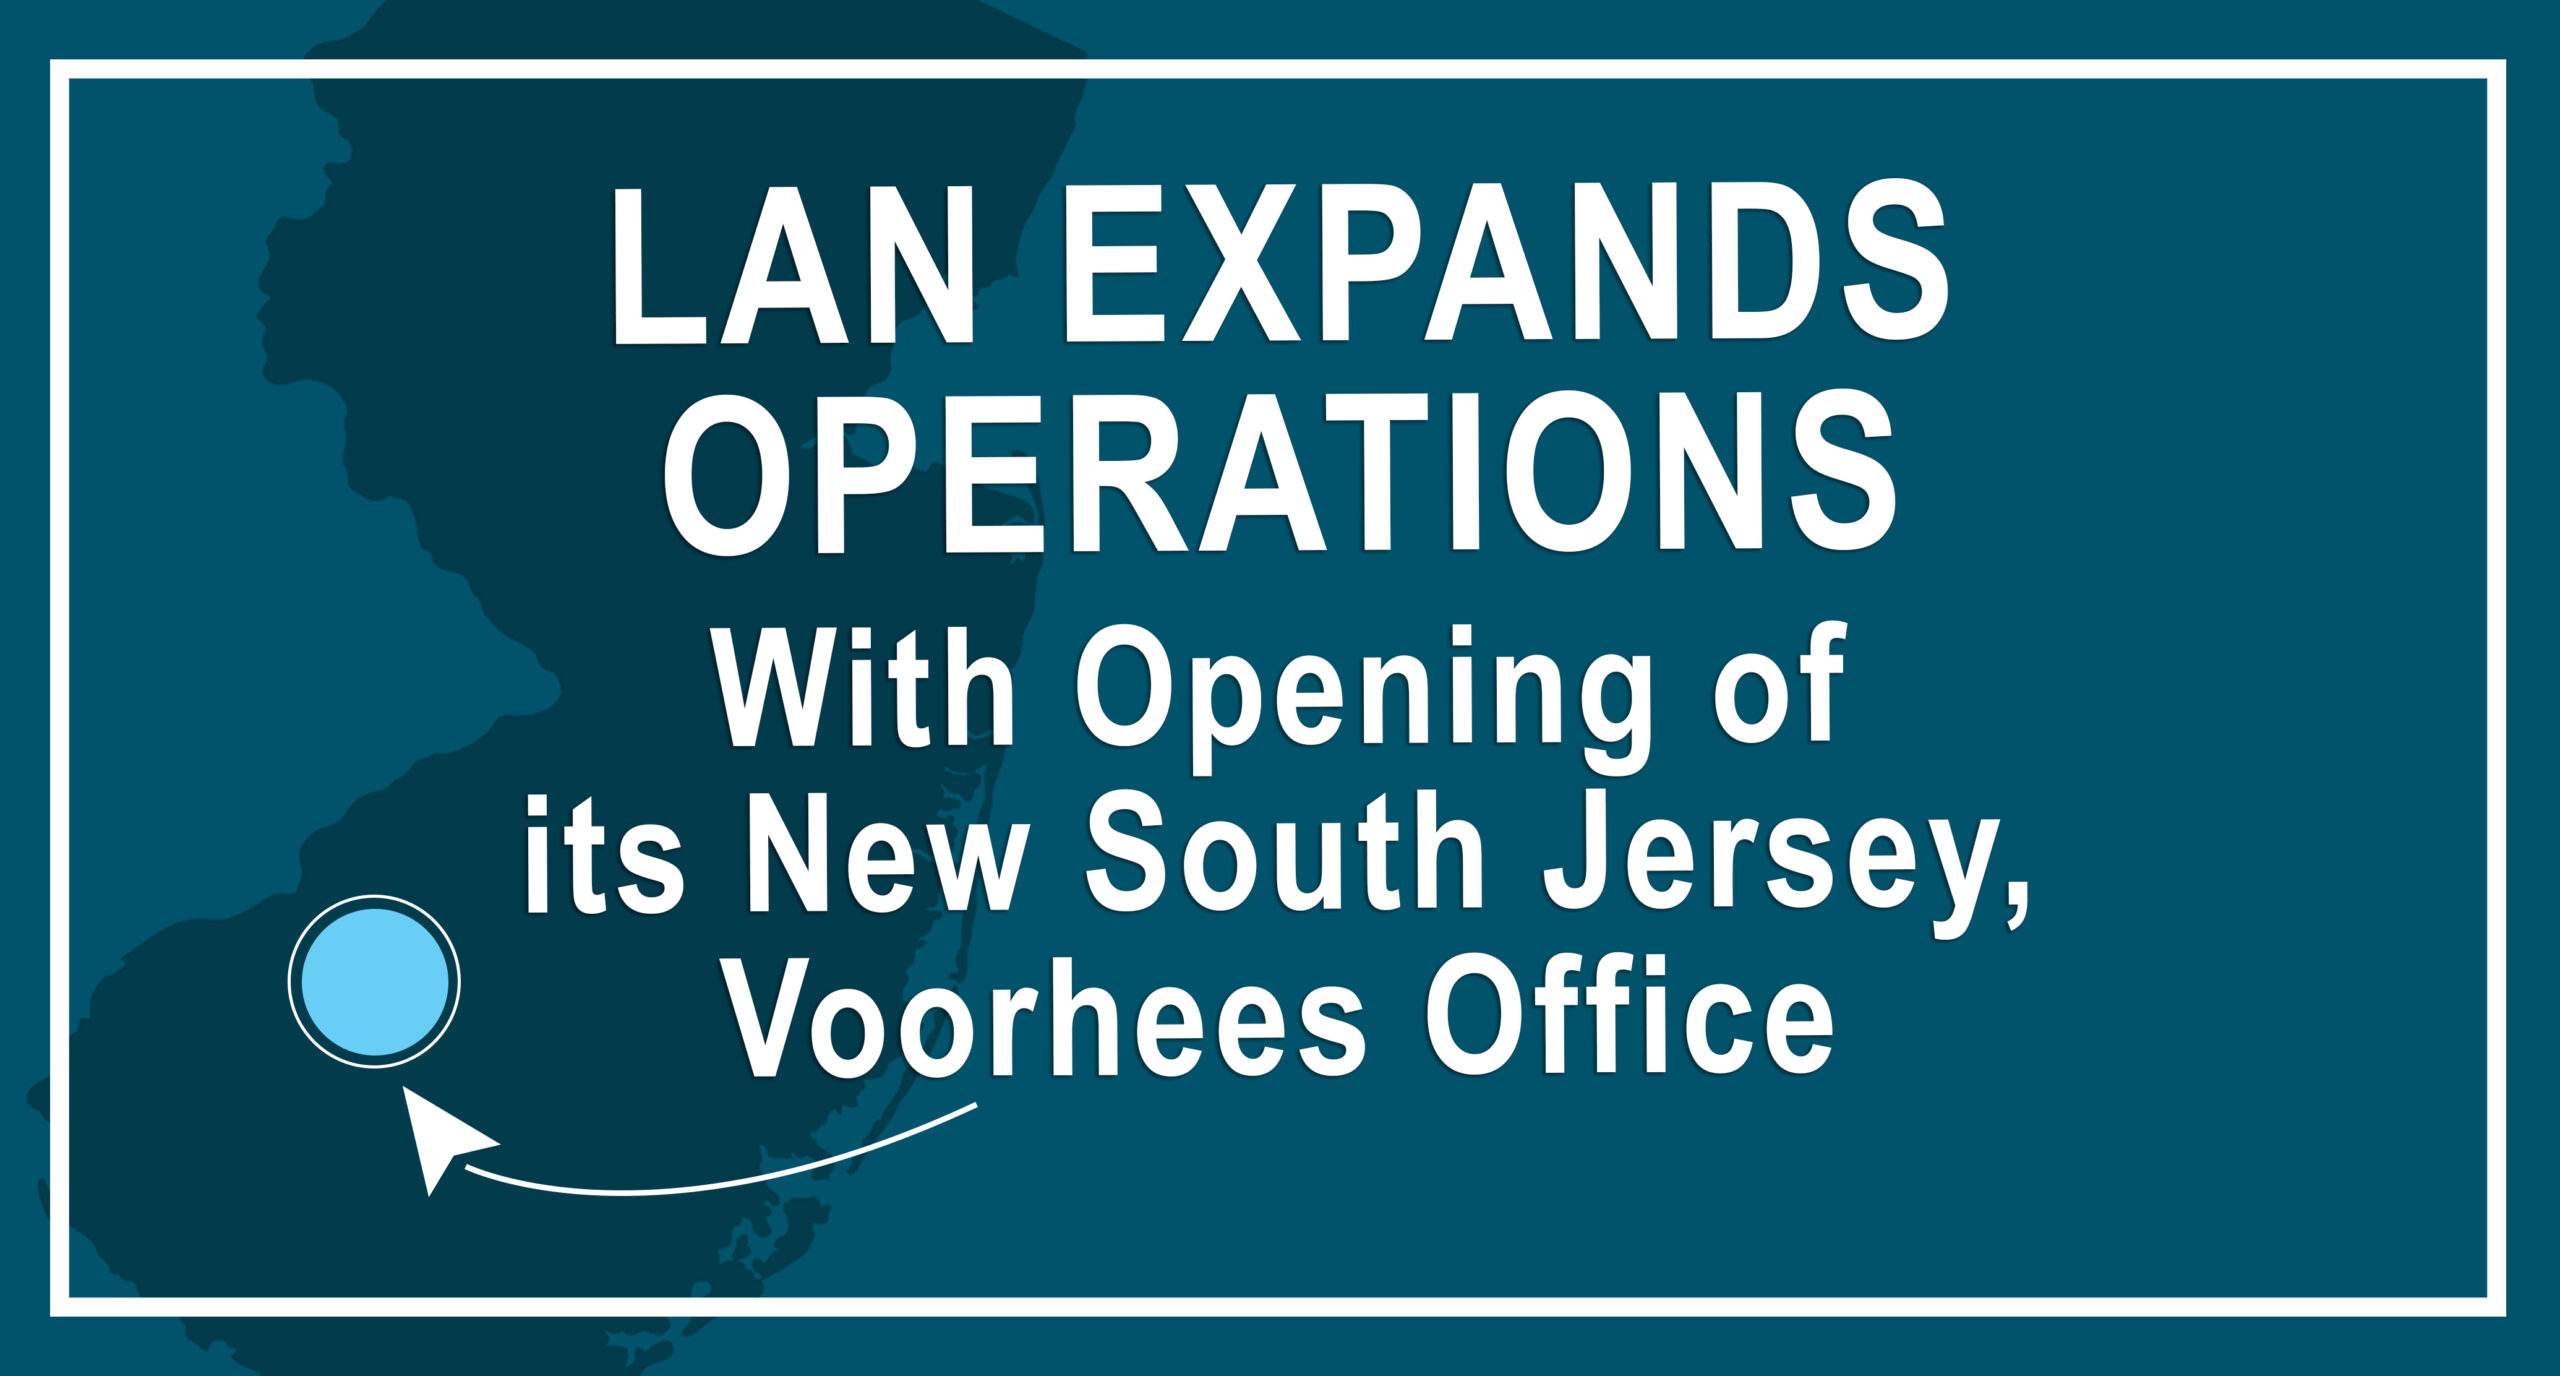 LAN Opens Southern NJ office